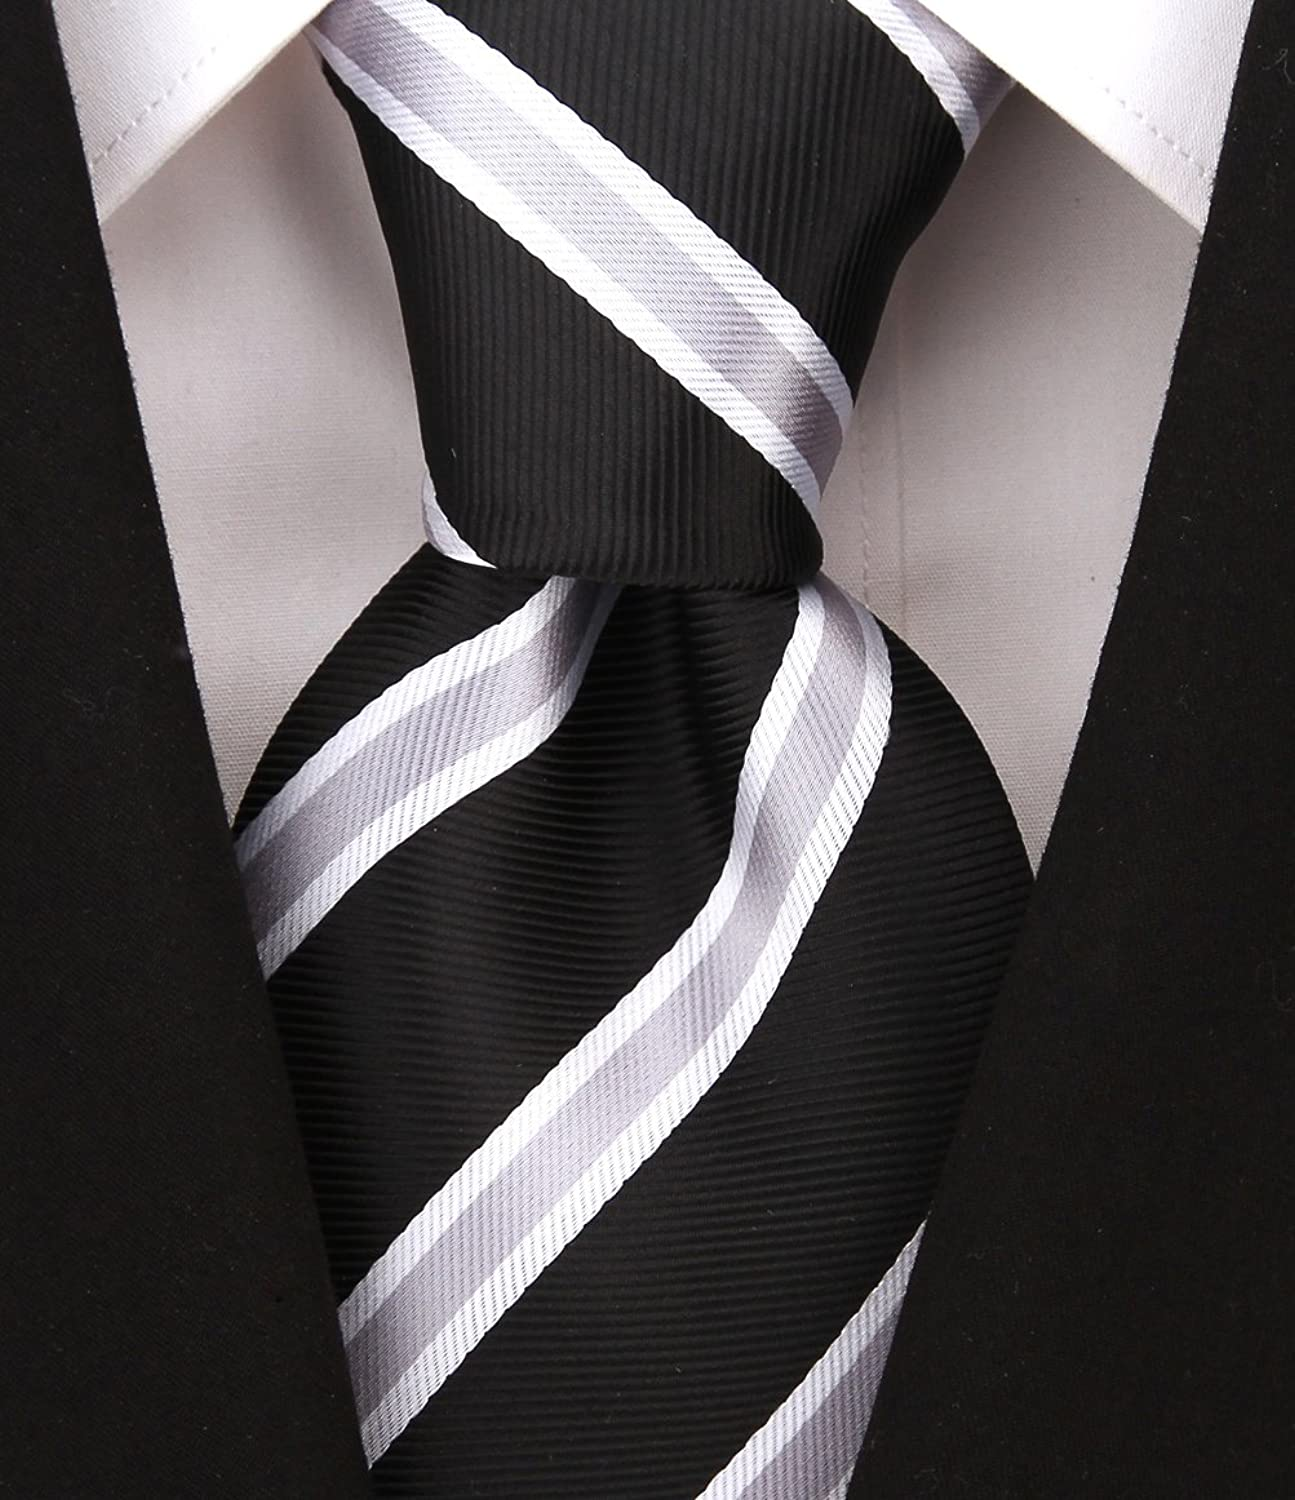 Edwardian Men's Neckties Scott Allan Mens Striped Necktie $11.99 AT vintagedancer.com